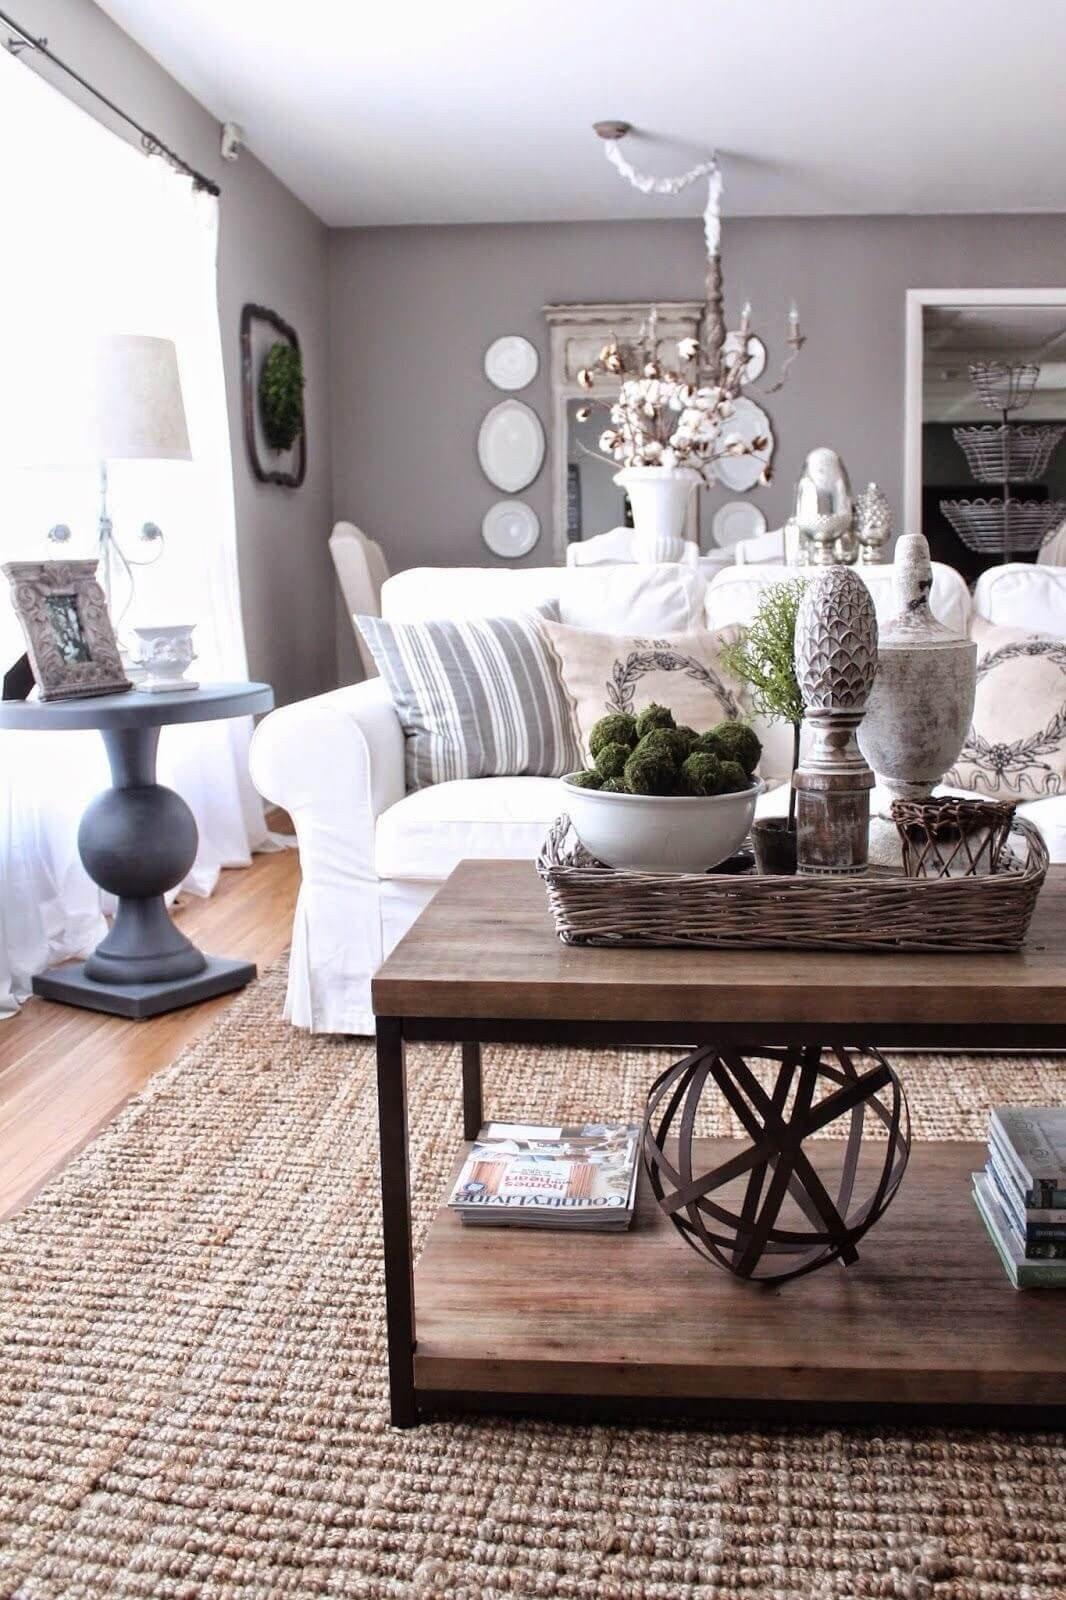 Ideas for Coffee Table Decor Unique 37 Best Coffee Table Decorating Ideas and Designs for 2019